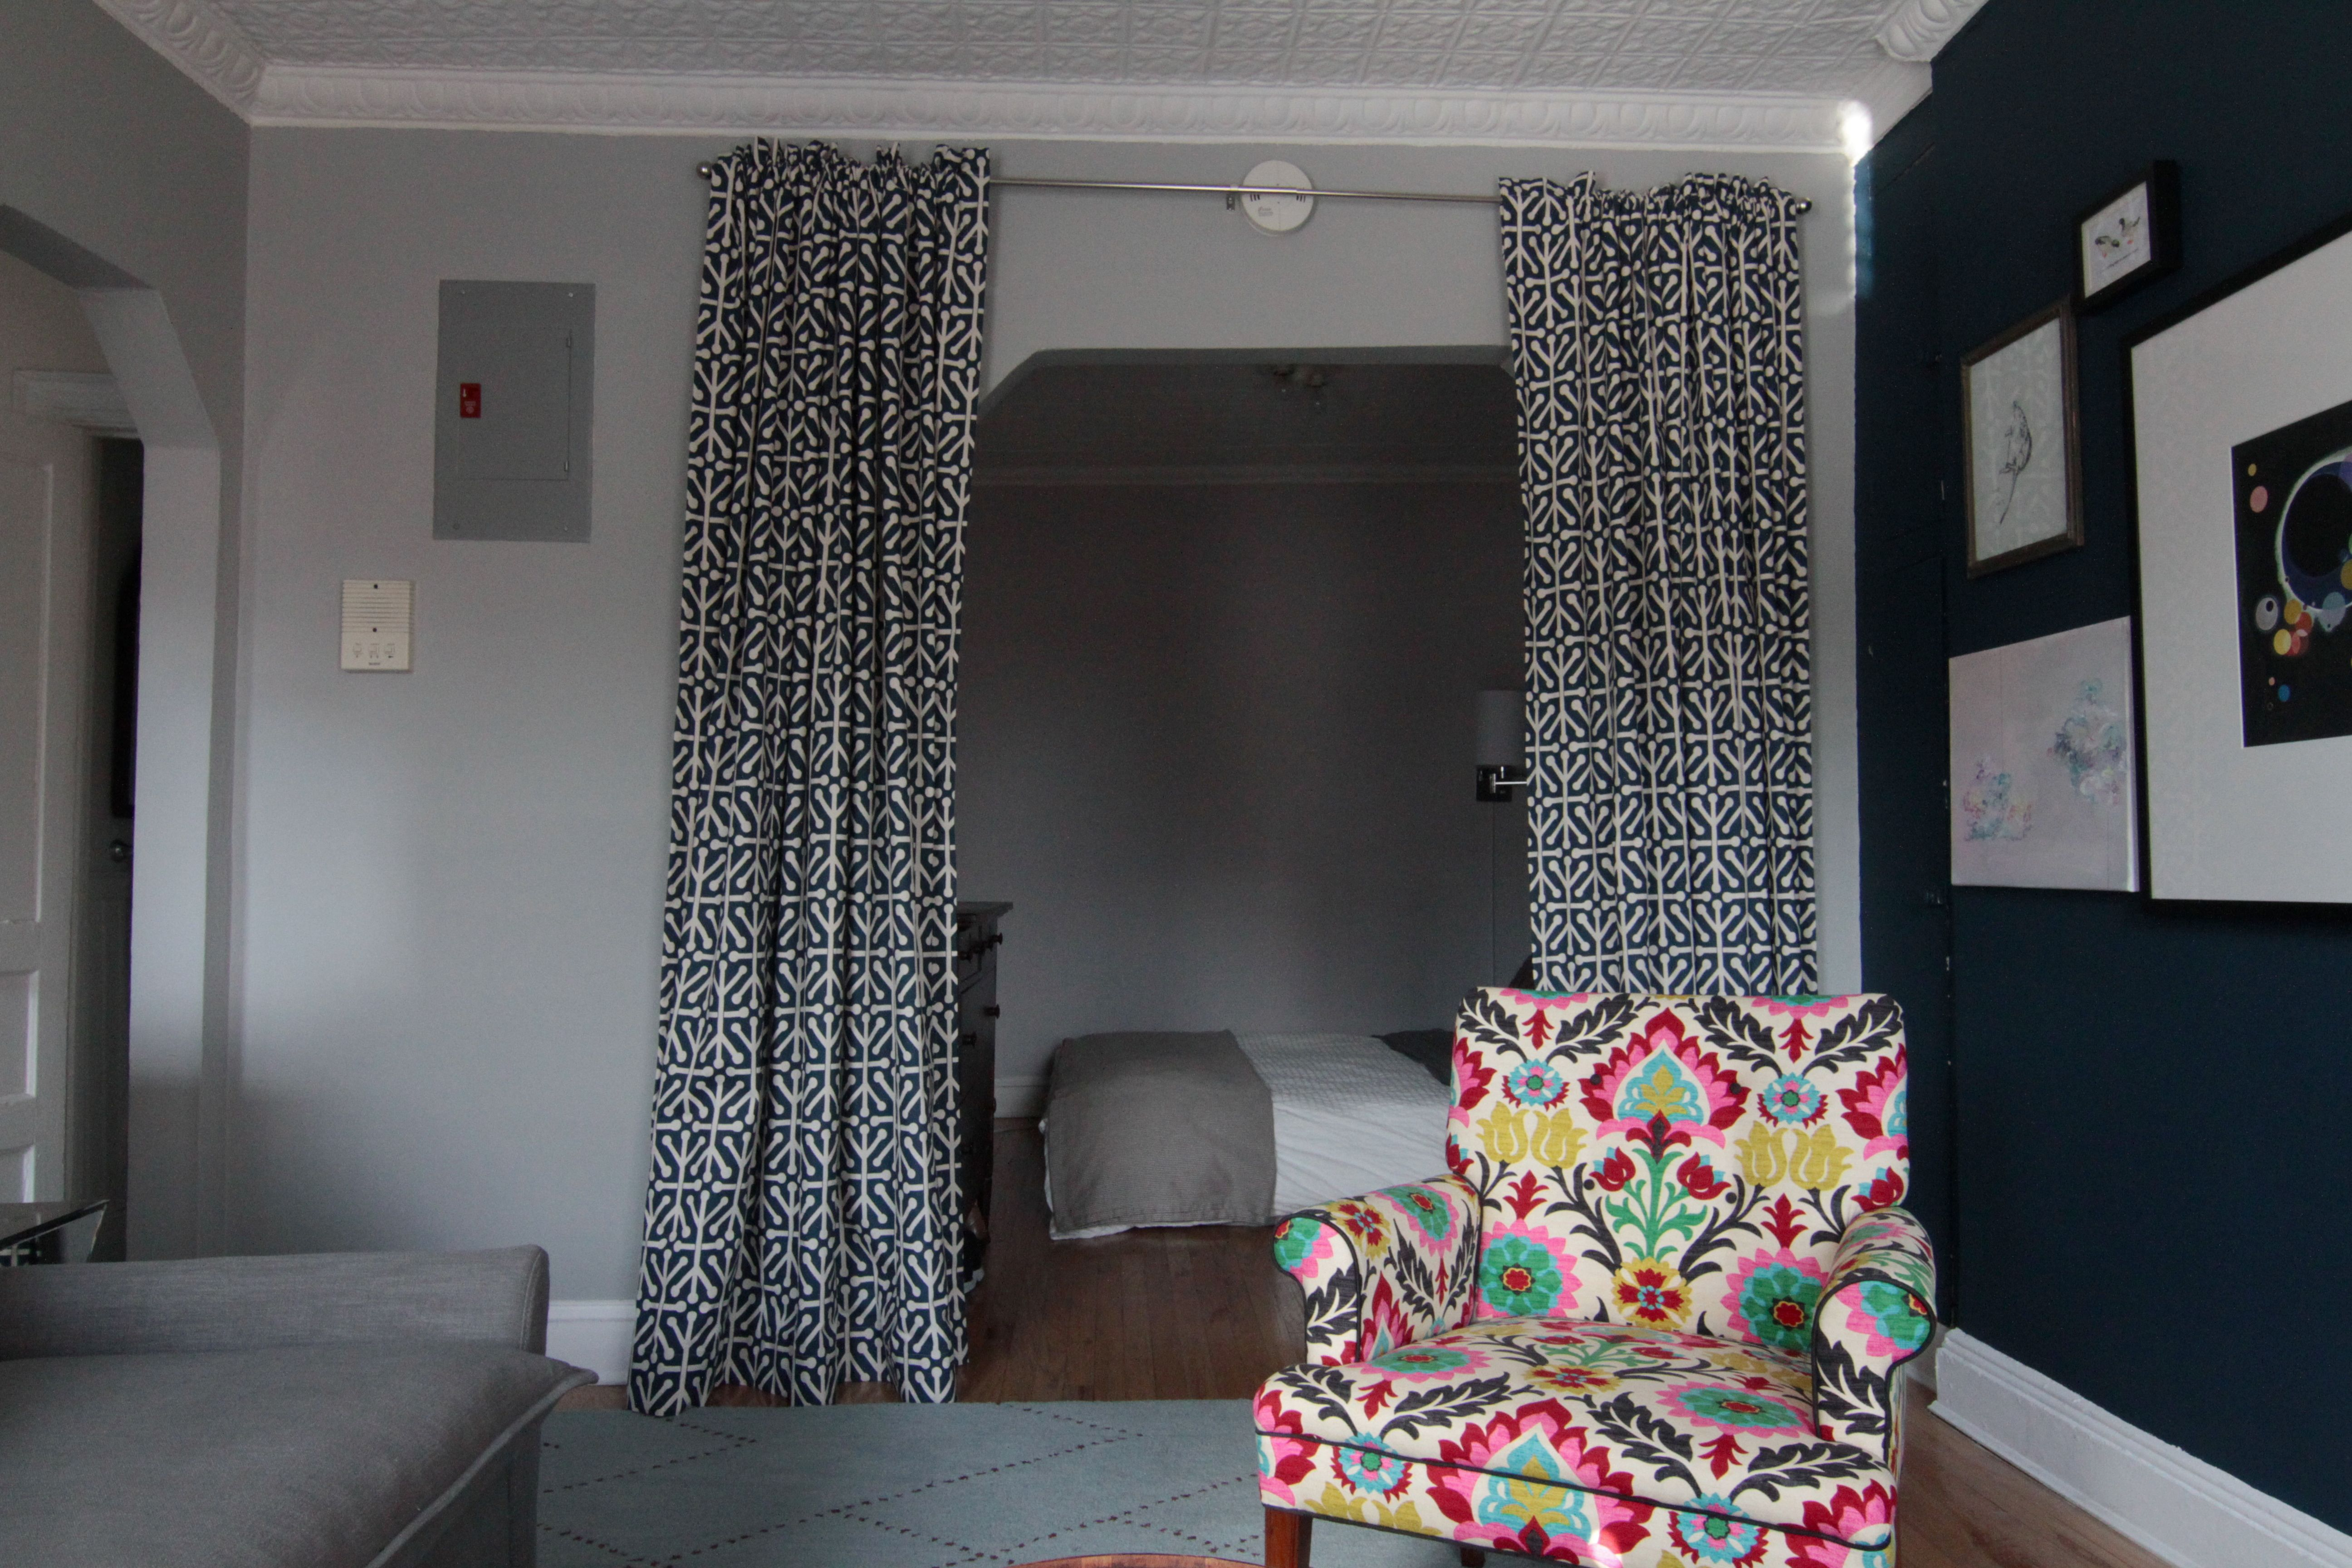 I made those curtains to create some doors/privacy after my sister had to stay with us for a few months. I was lucky that the color of the fabric matched so closely to the wall color.